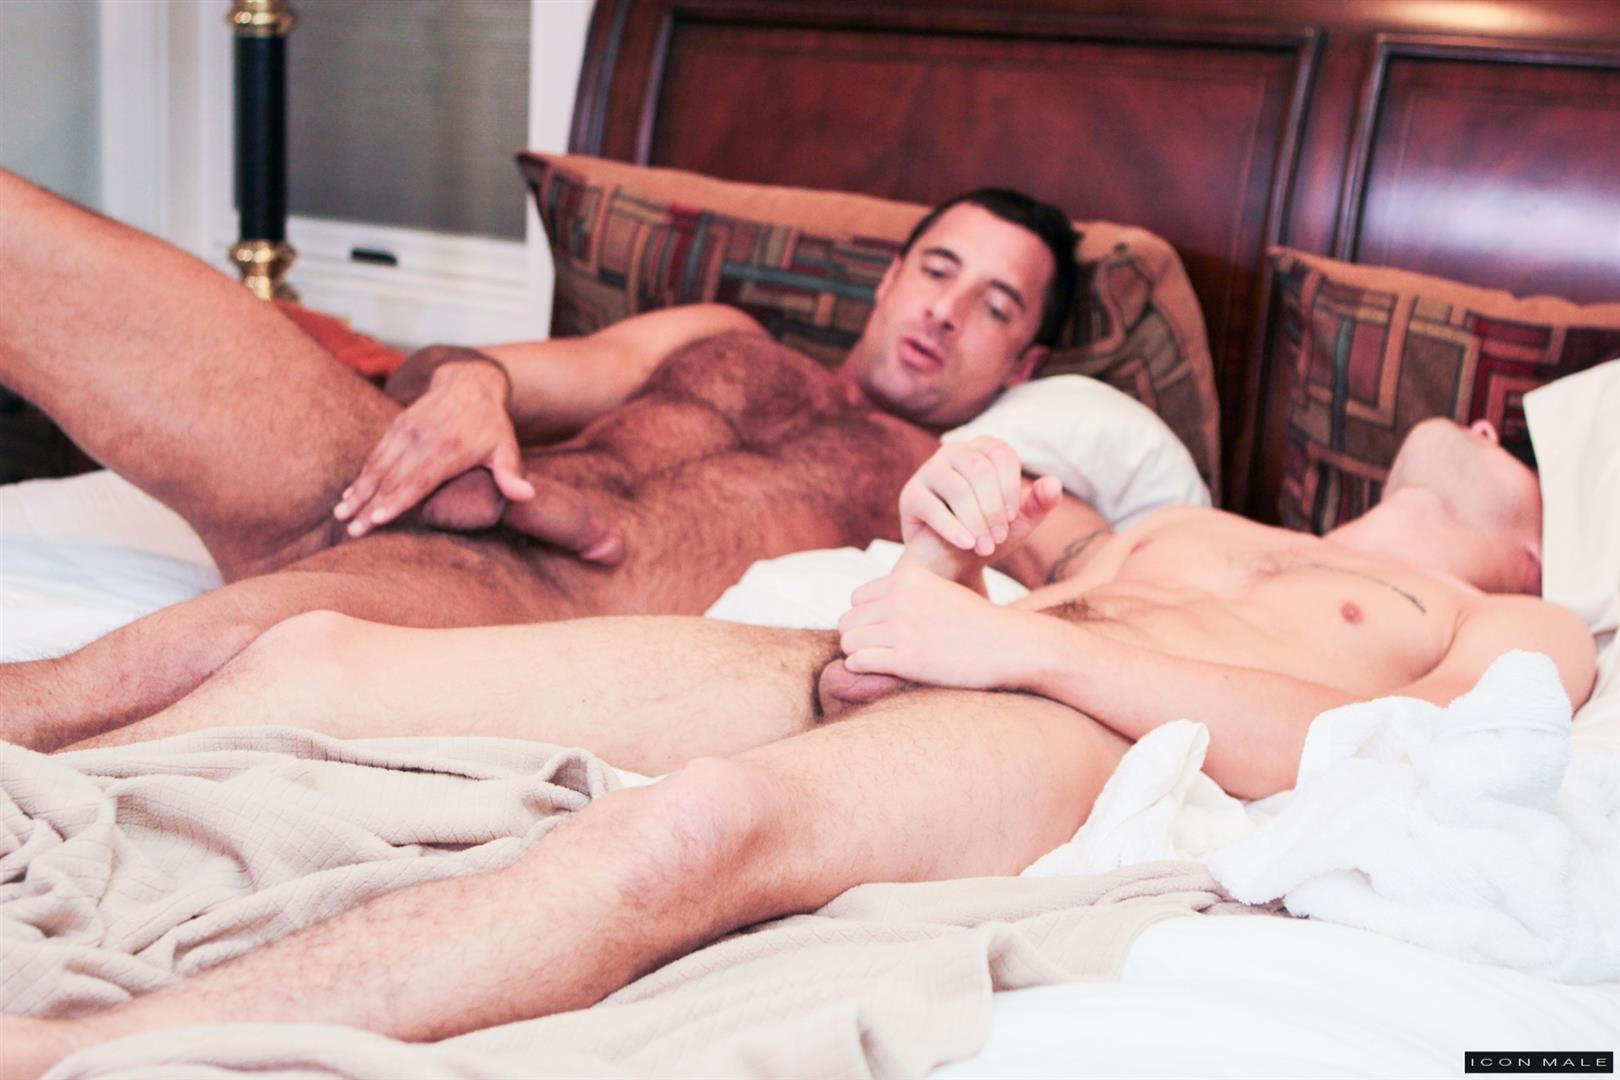 Icon-Male-Nick-Capra-and-Hunter-Hairy-Muscle-Daddy-Fucking-A-Twink-Page-Big-Uncut-Cock-Amateur-Gay-Porn-01.jpg